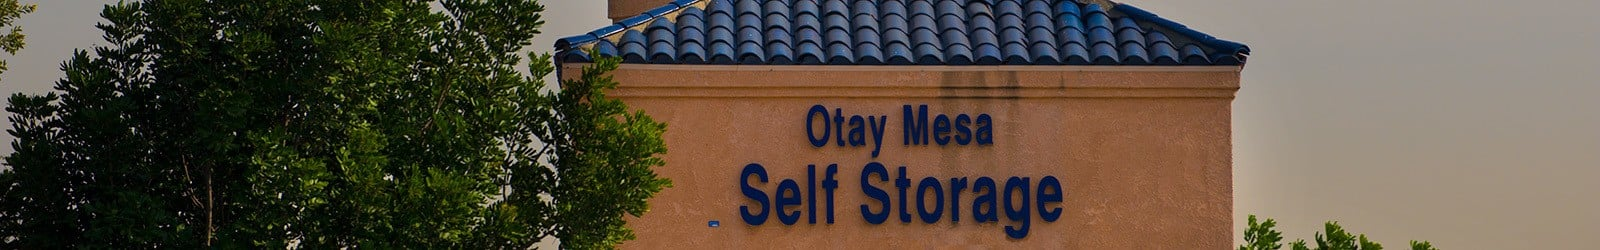 Otay Mesa Self Storage Boat and RV Storage